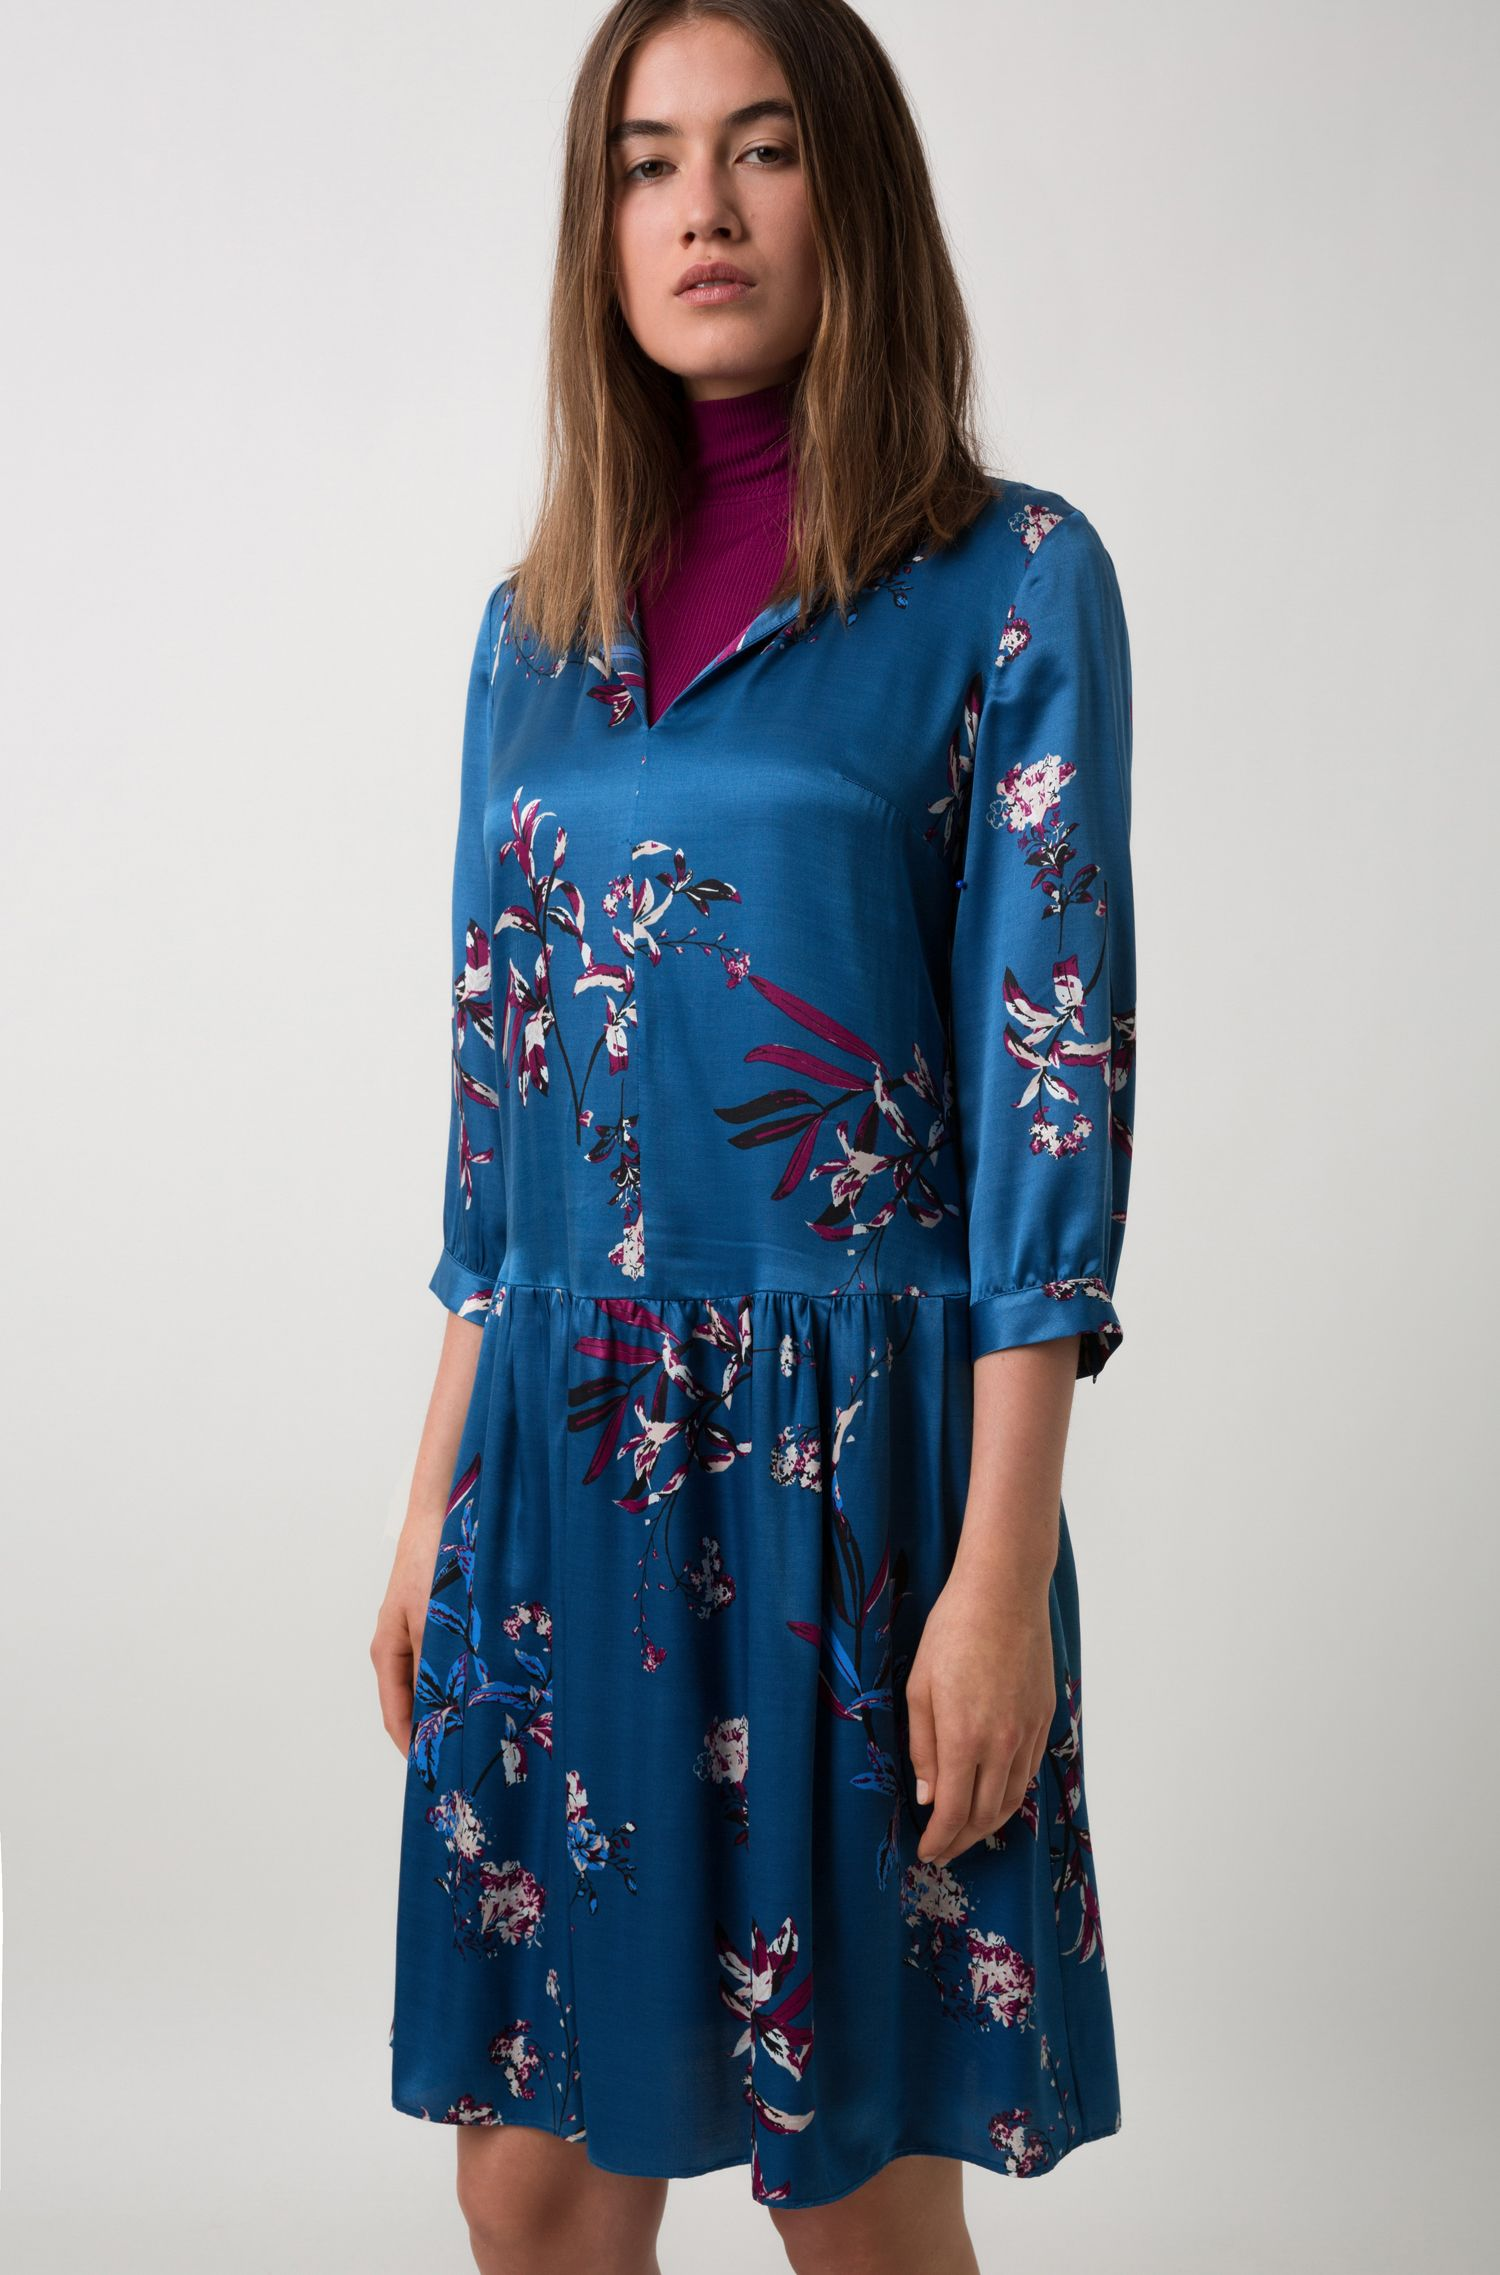 Silky floral-print dress with three-quarter sleeves, Patterned